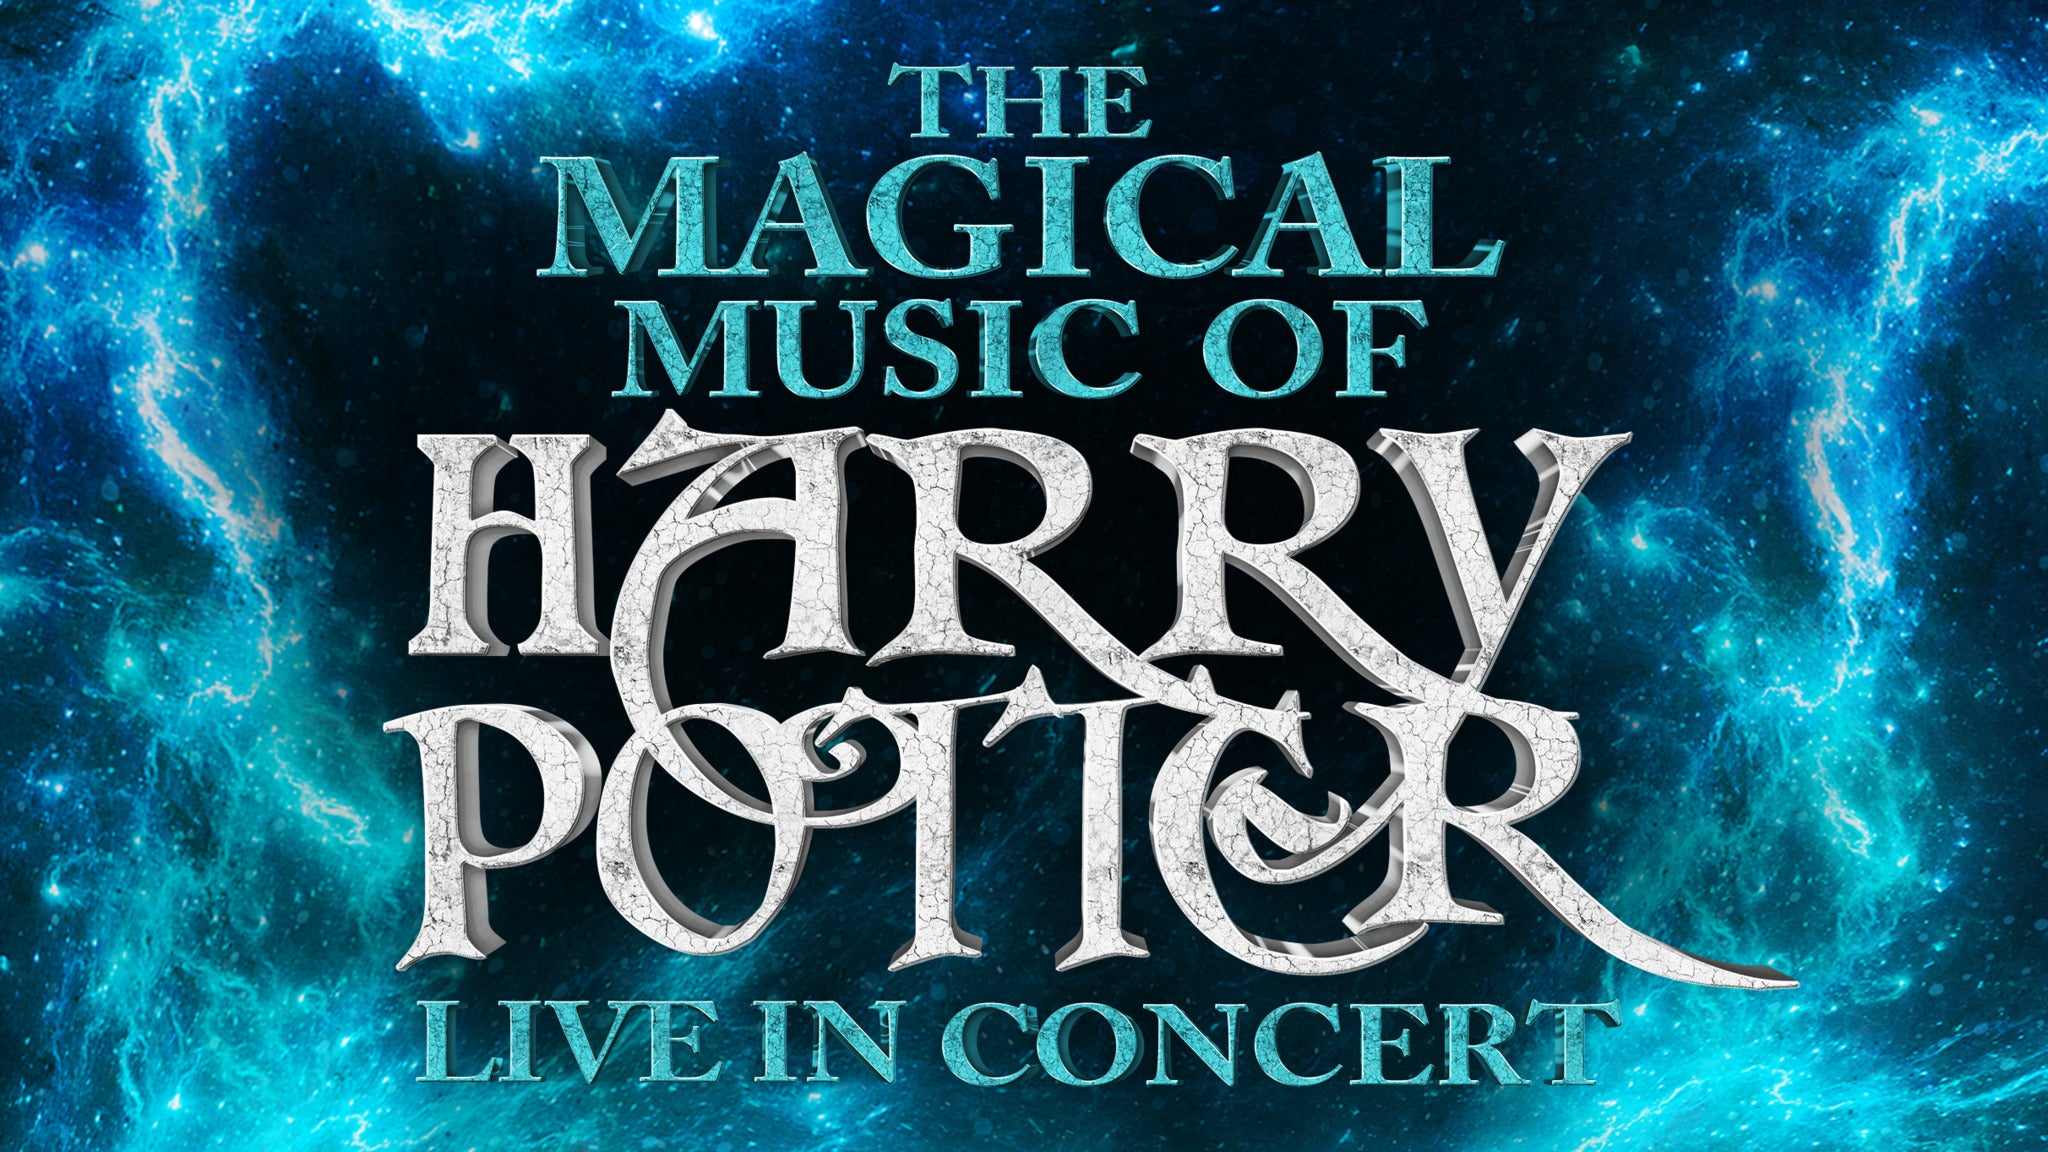 Image used with permission from Ticketmaster | The Magical Music of Harry Potter tickets